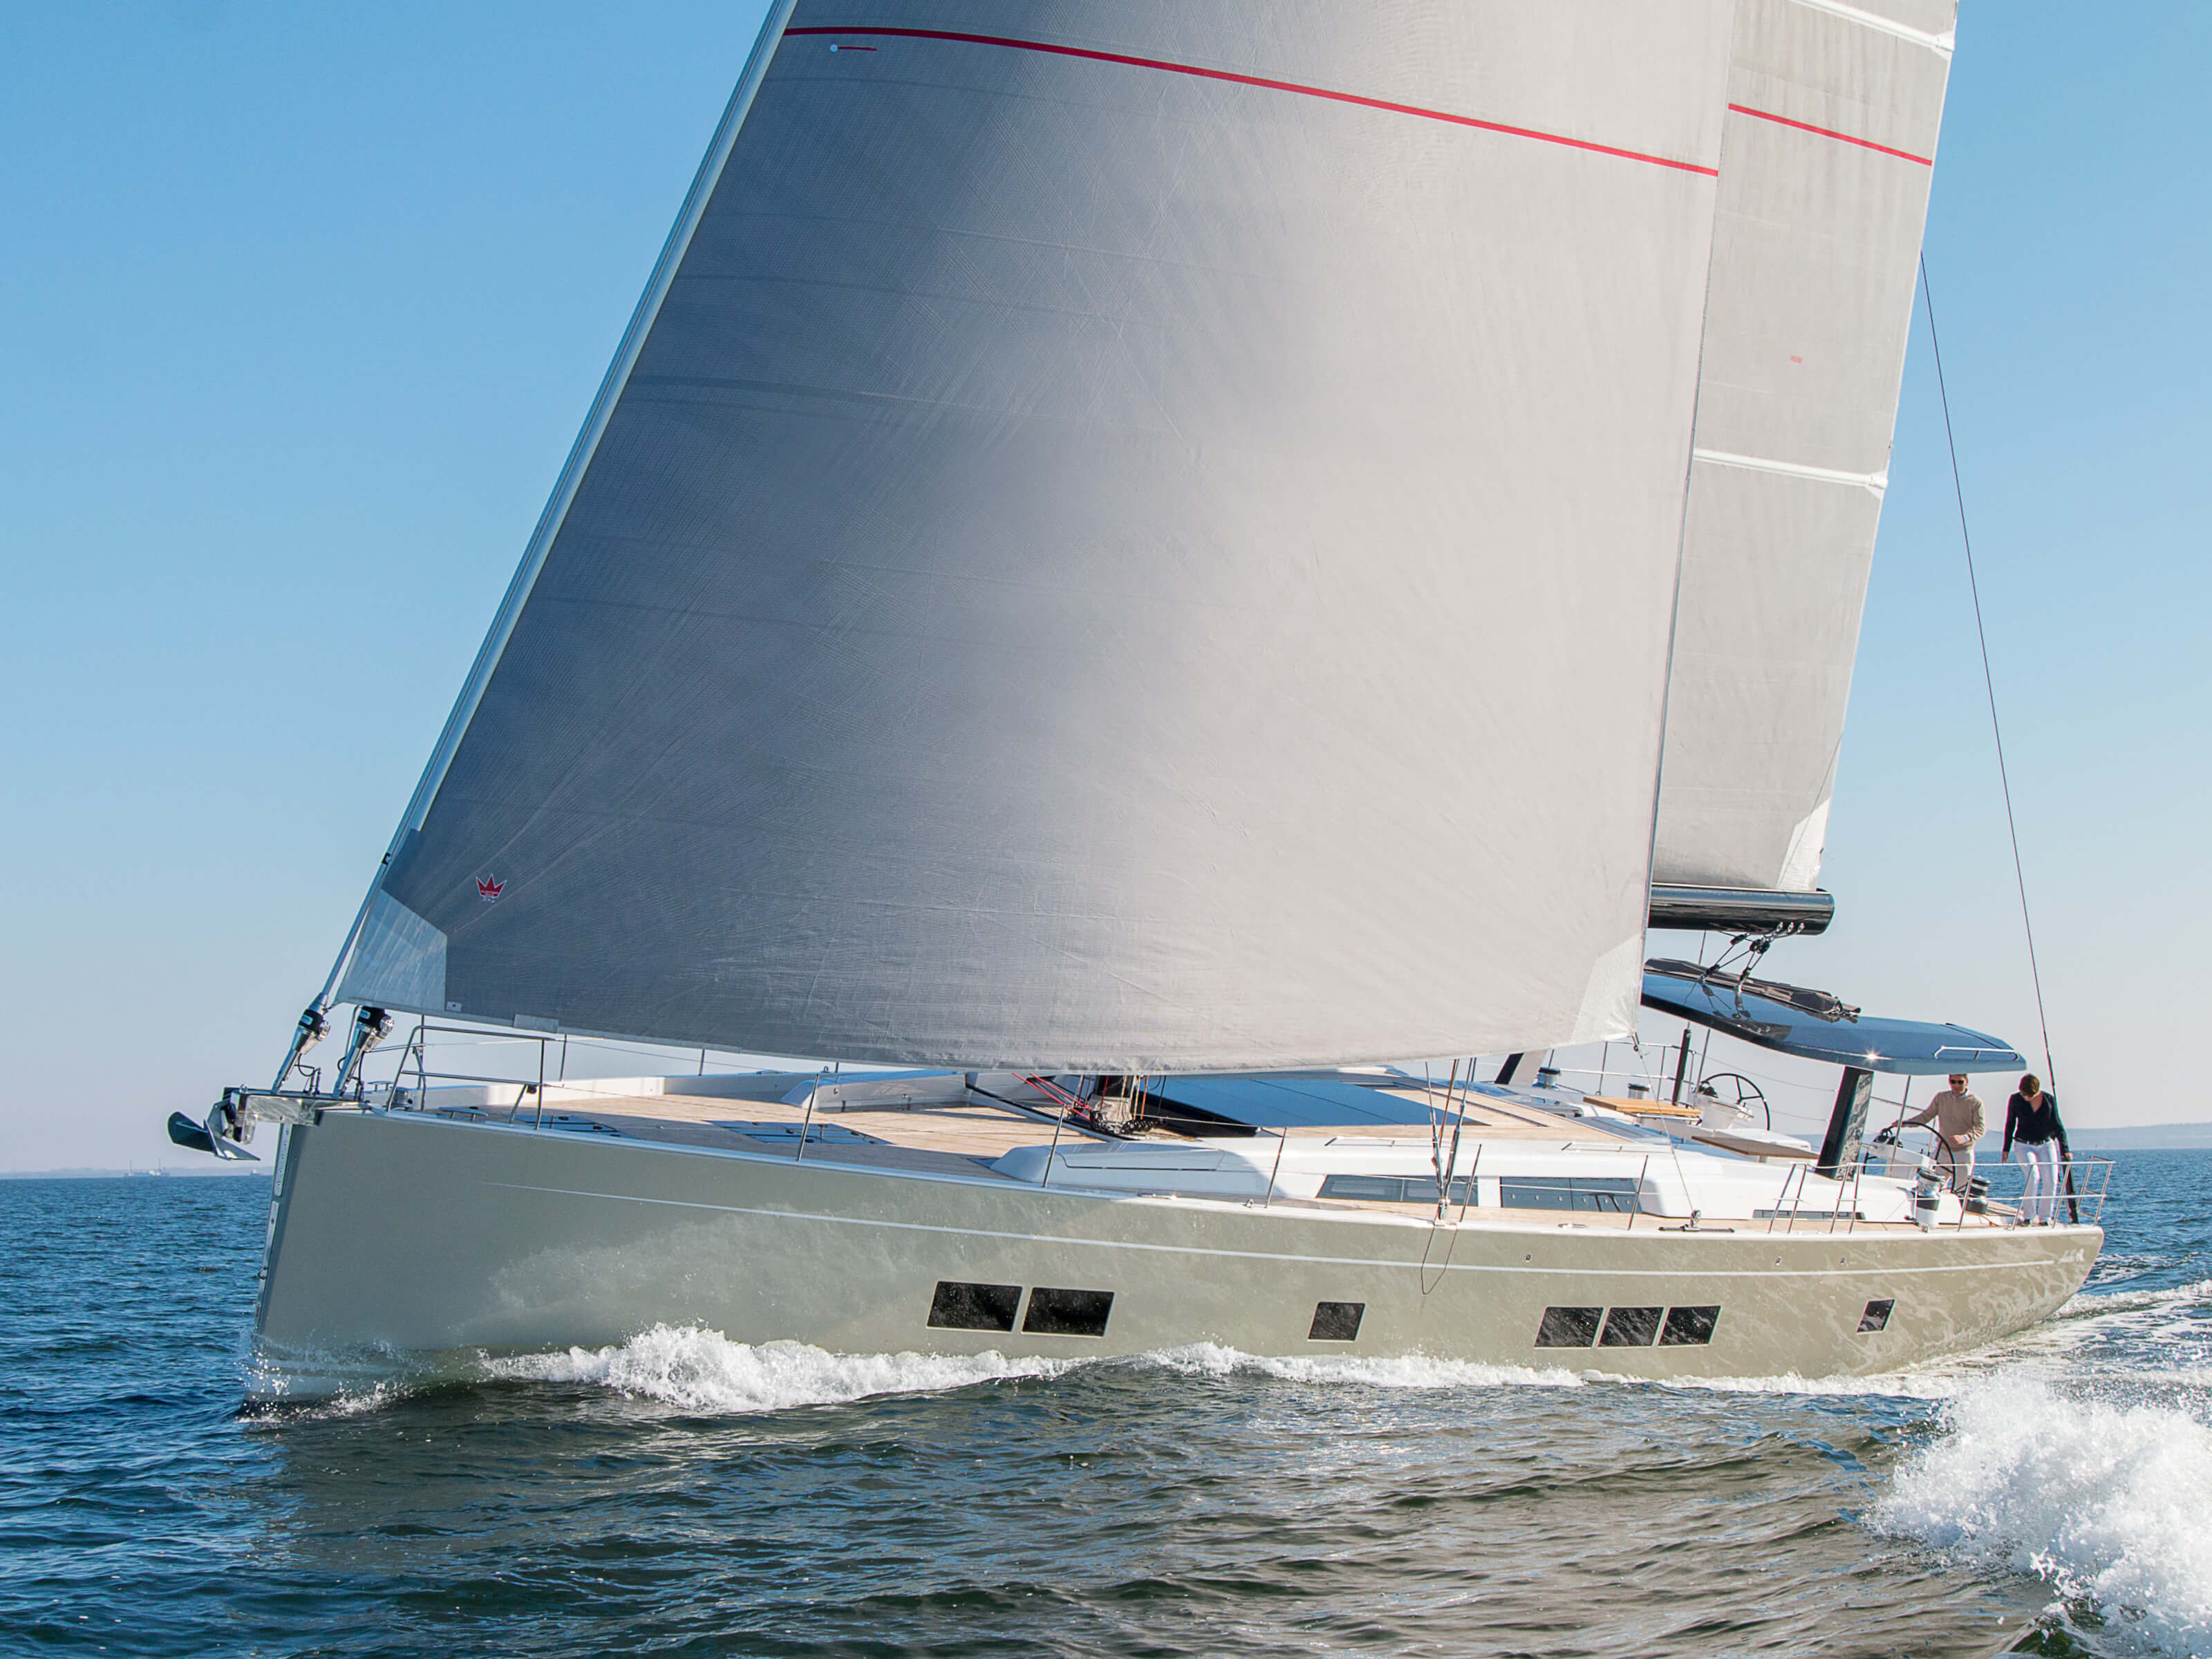 Hanse 675 | mainsail, Genoa, cockpit, double steering wheel, rail | Hanse